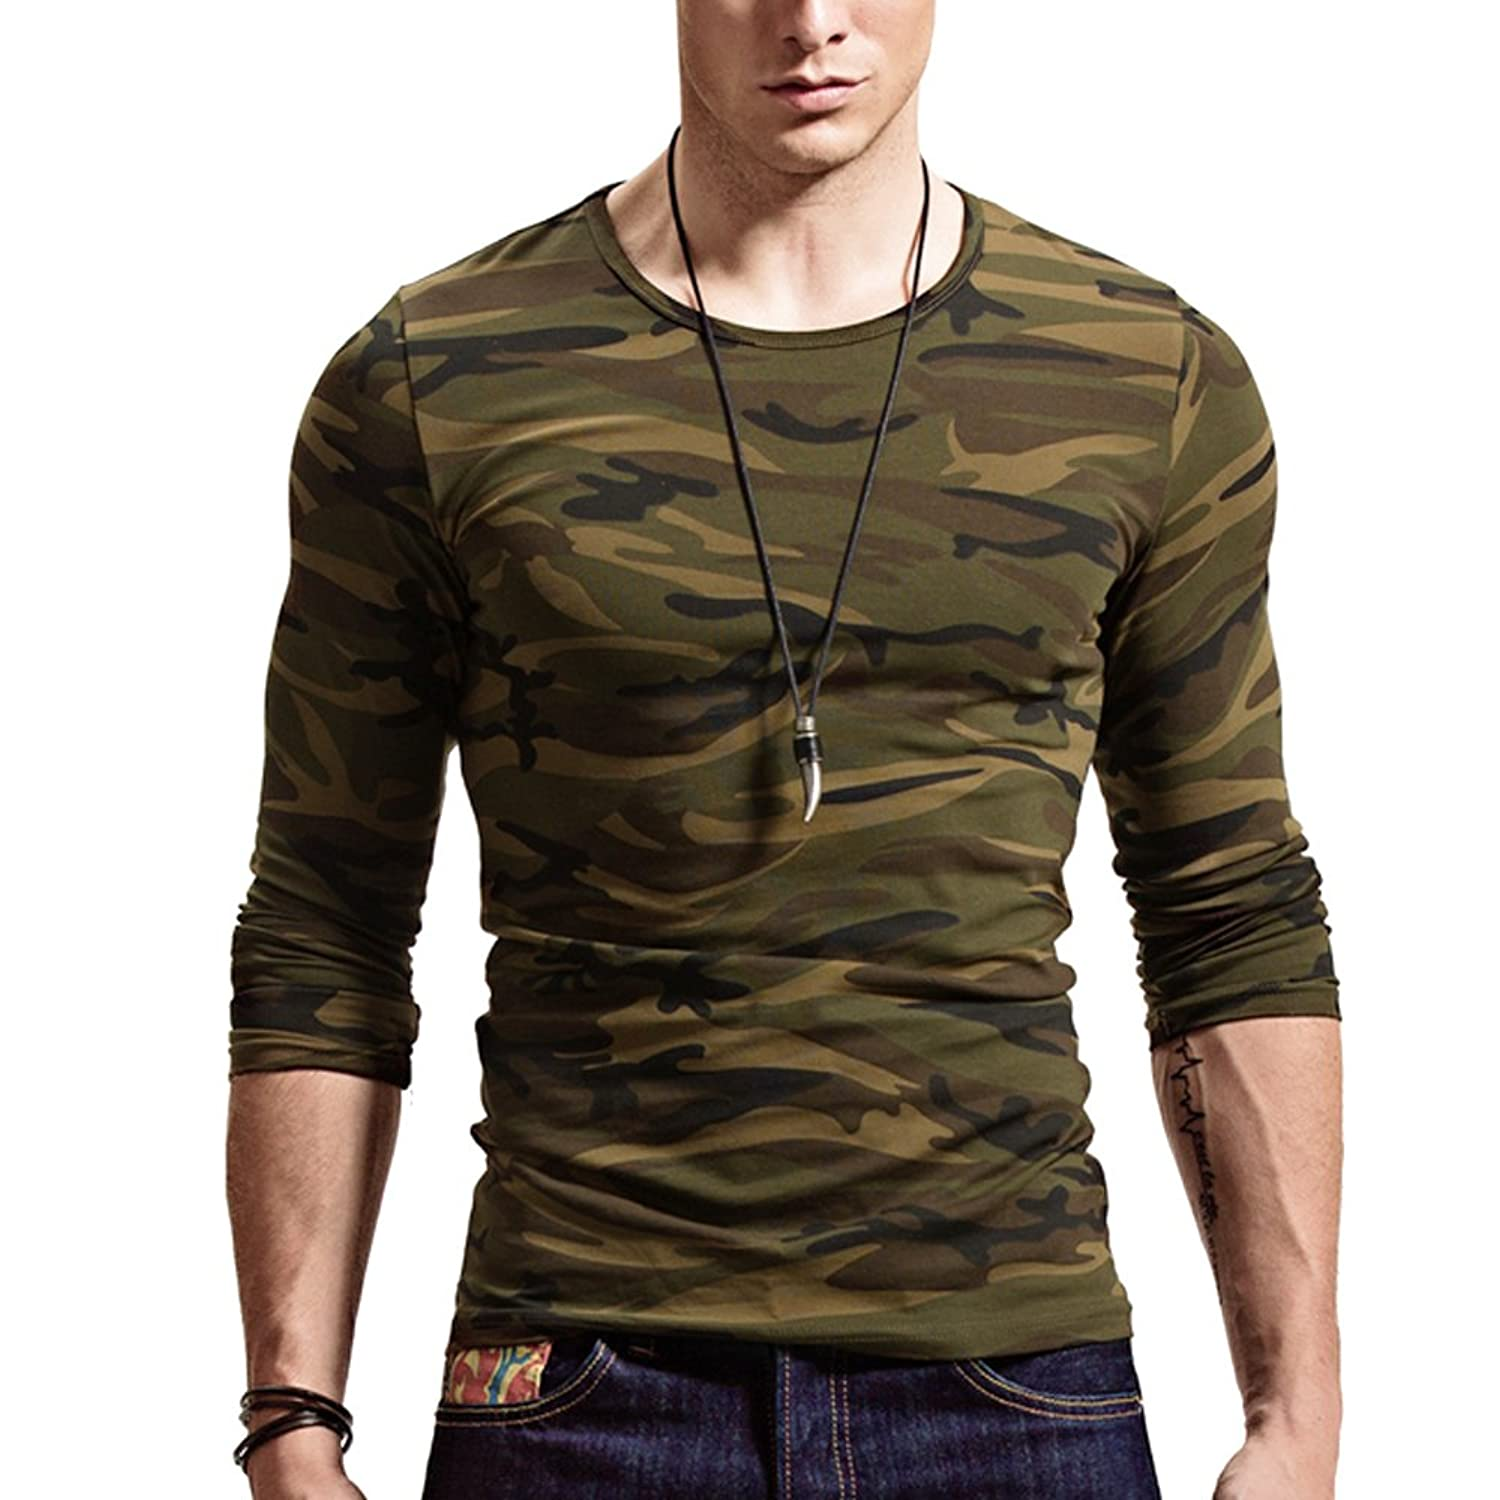 71b01c506 ... extremely comfortable to wear. CAMO DESIGN: Slim fit camo military T- shirt, full sleeve, round necked design, showing the military\'s  personality and ...